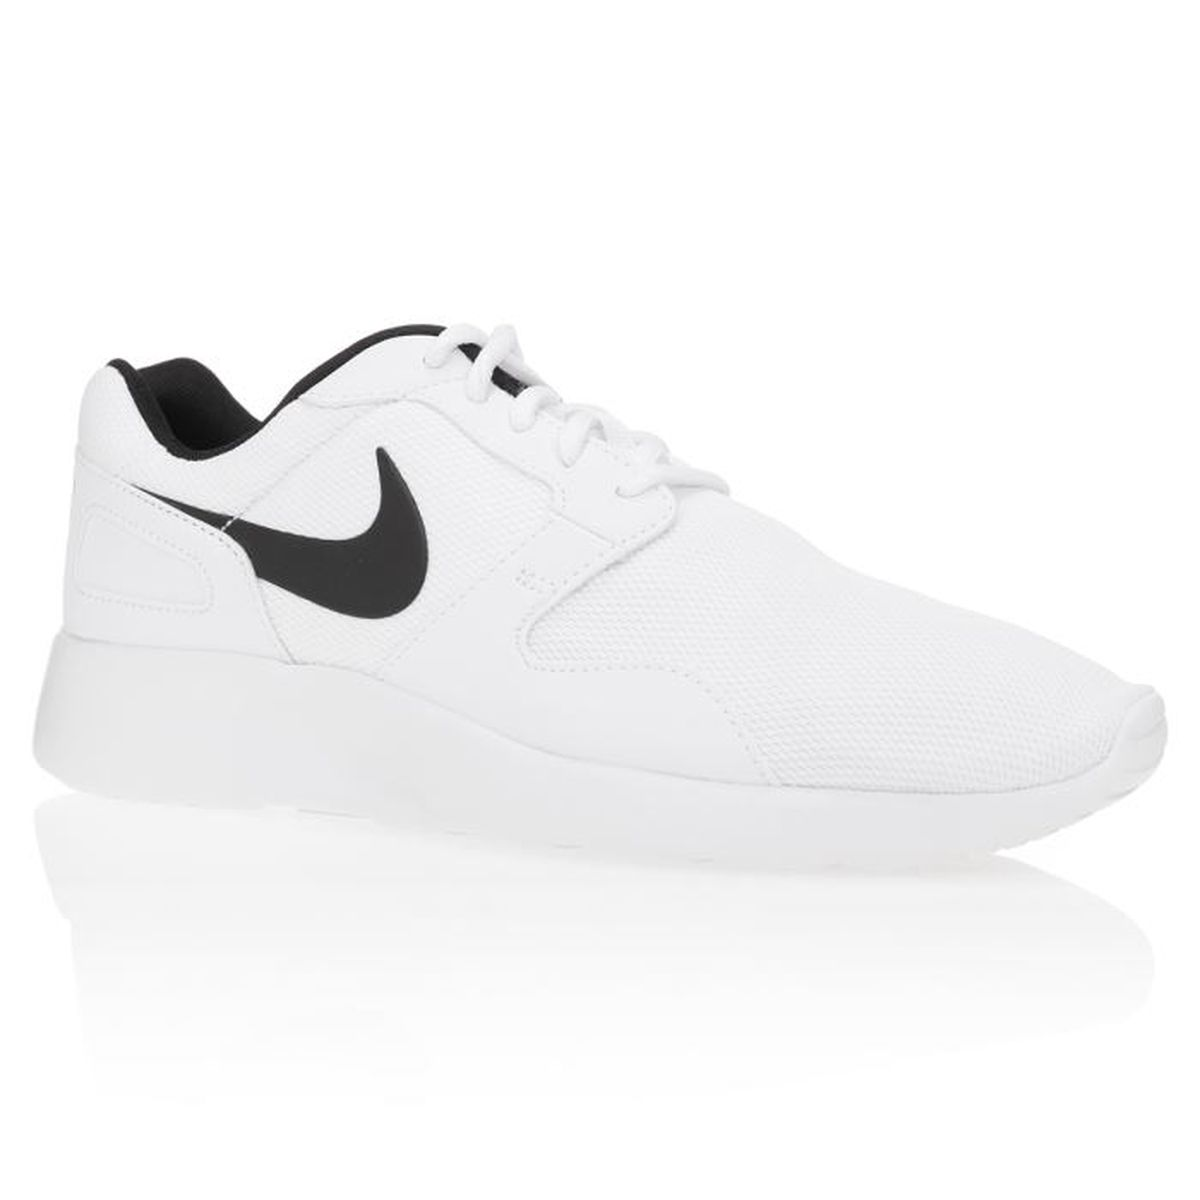 chaussures nike blanche homme. Black Bedroom Furniture Sets. Home Design Ideas